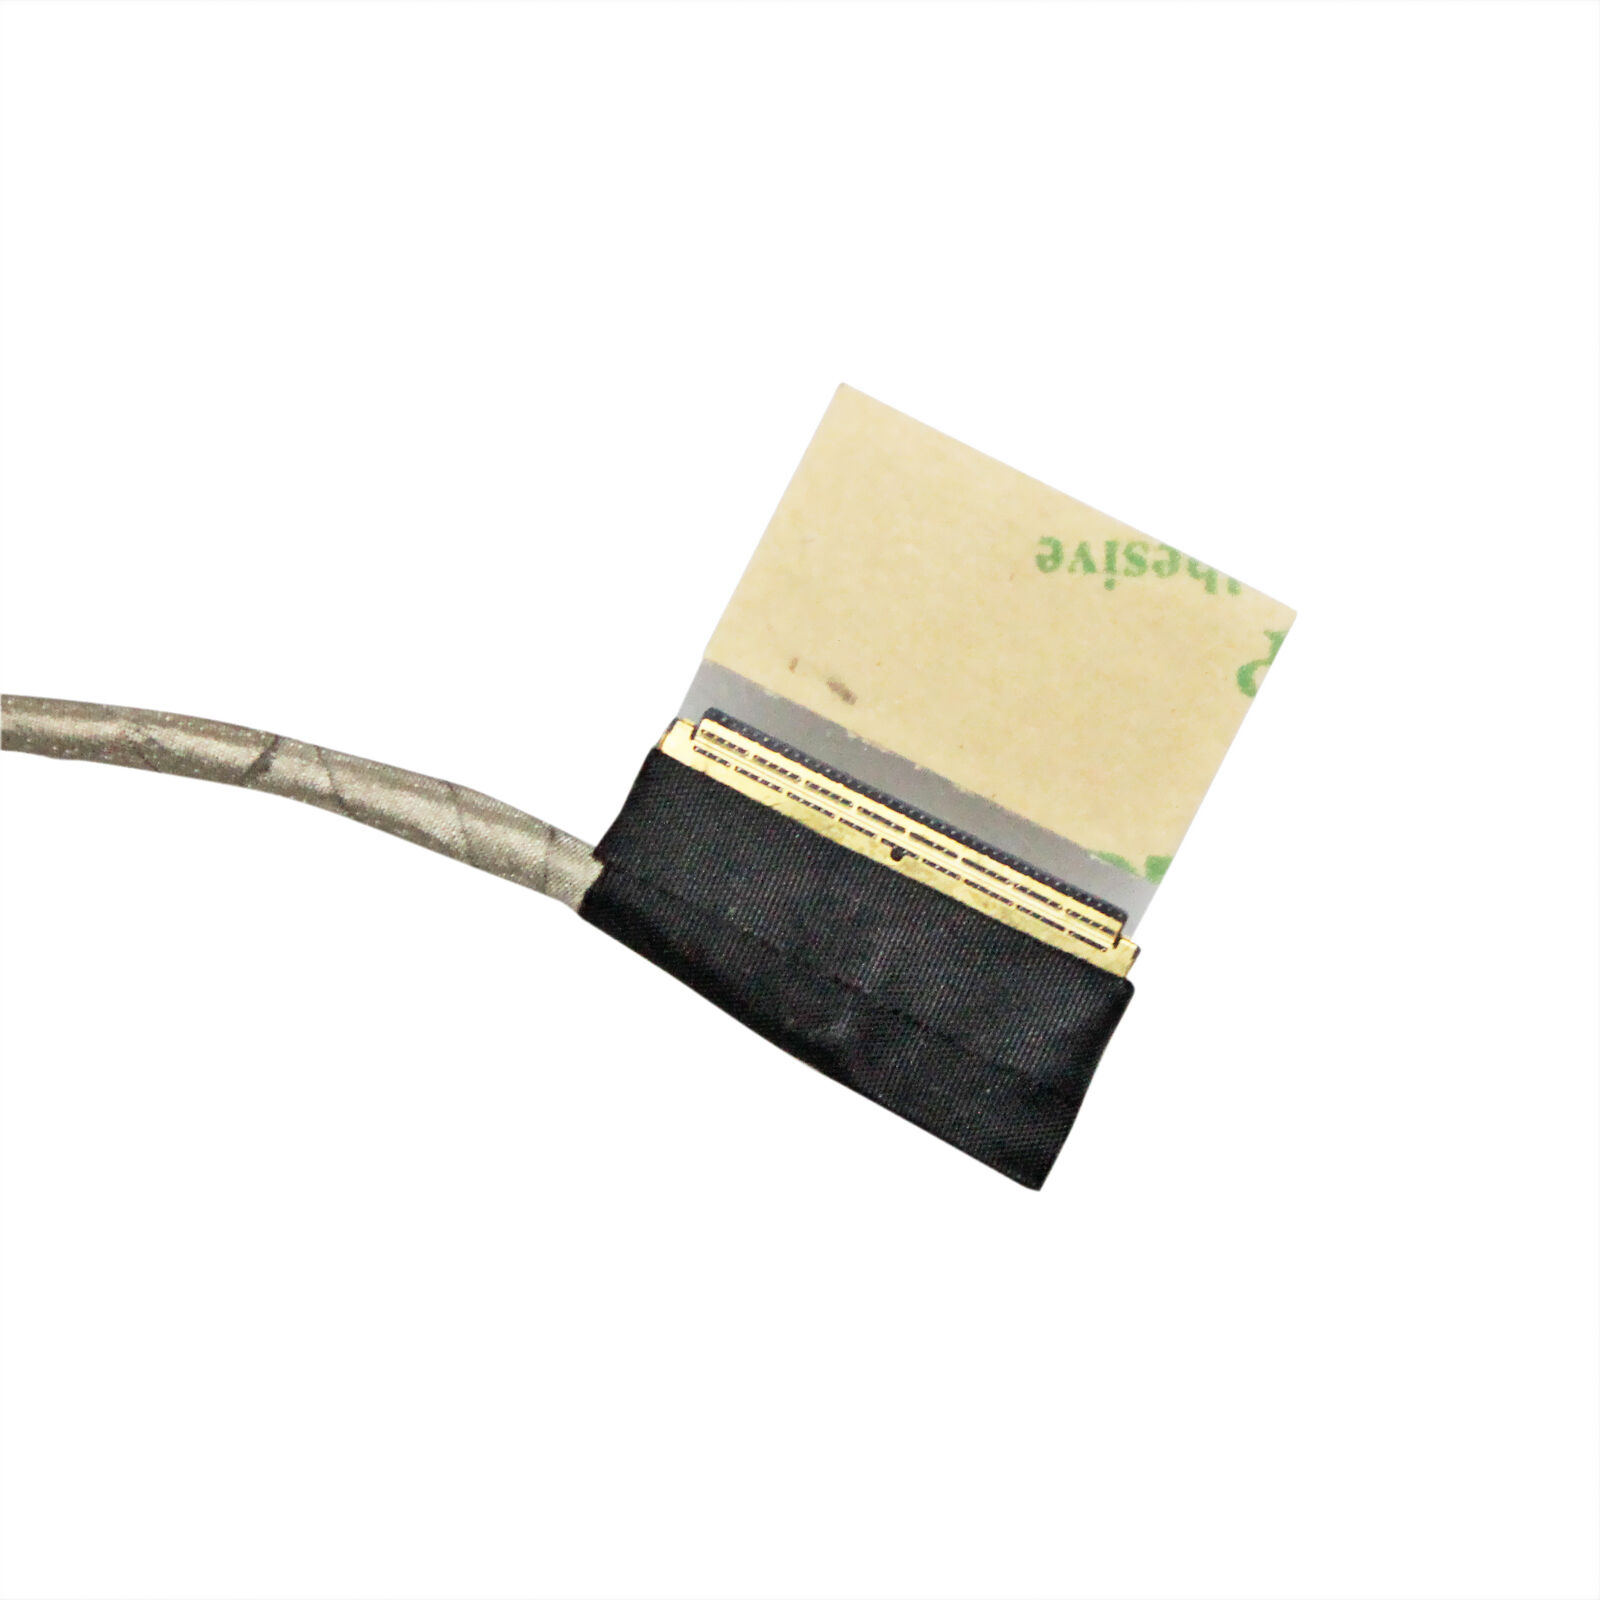 LCD LED LVDS VIDEO SCREEN CABLE FOR HP 15-g020ca 15-g020nr 15-g021ca 15-g021ds